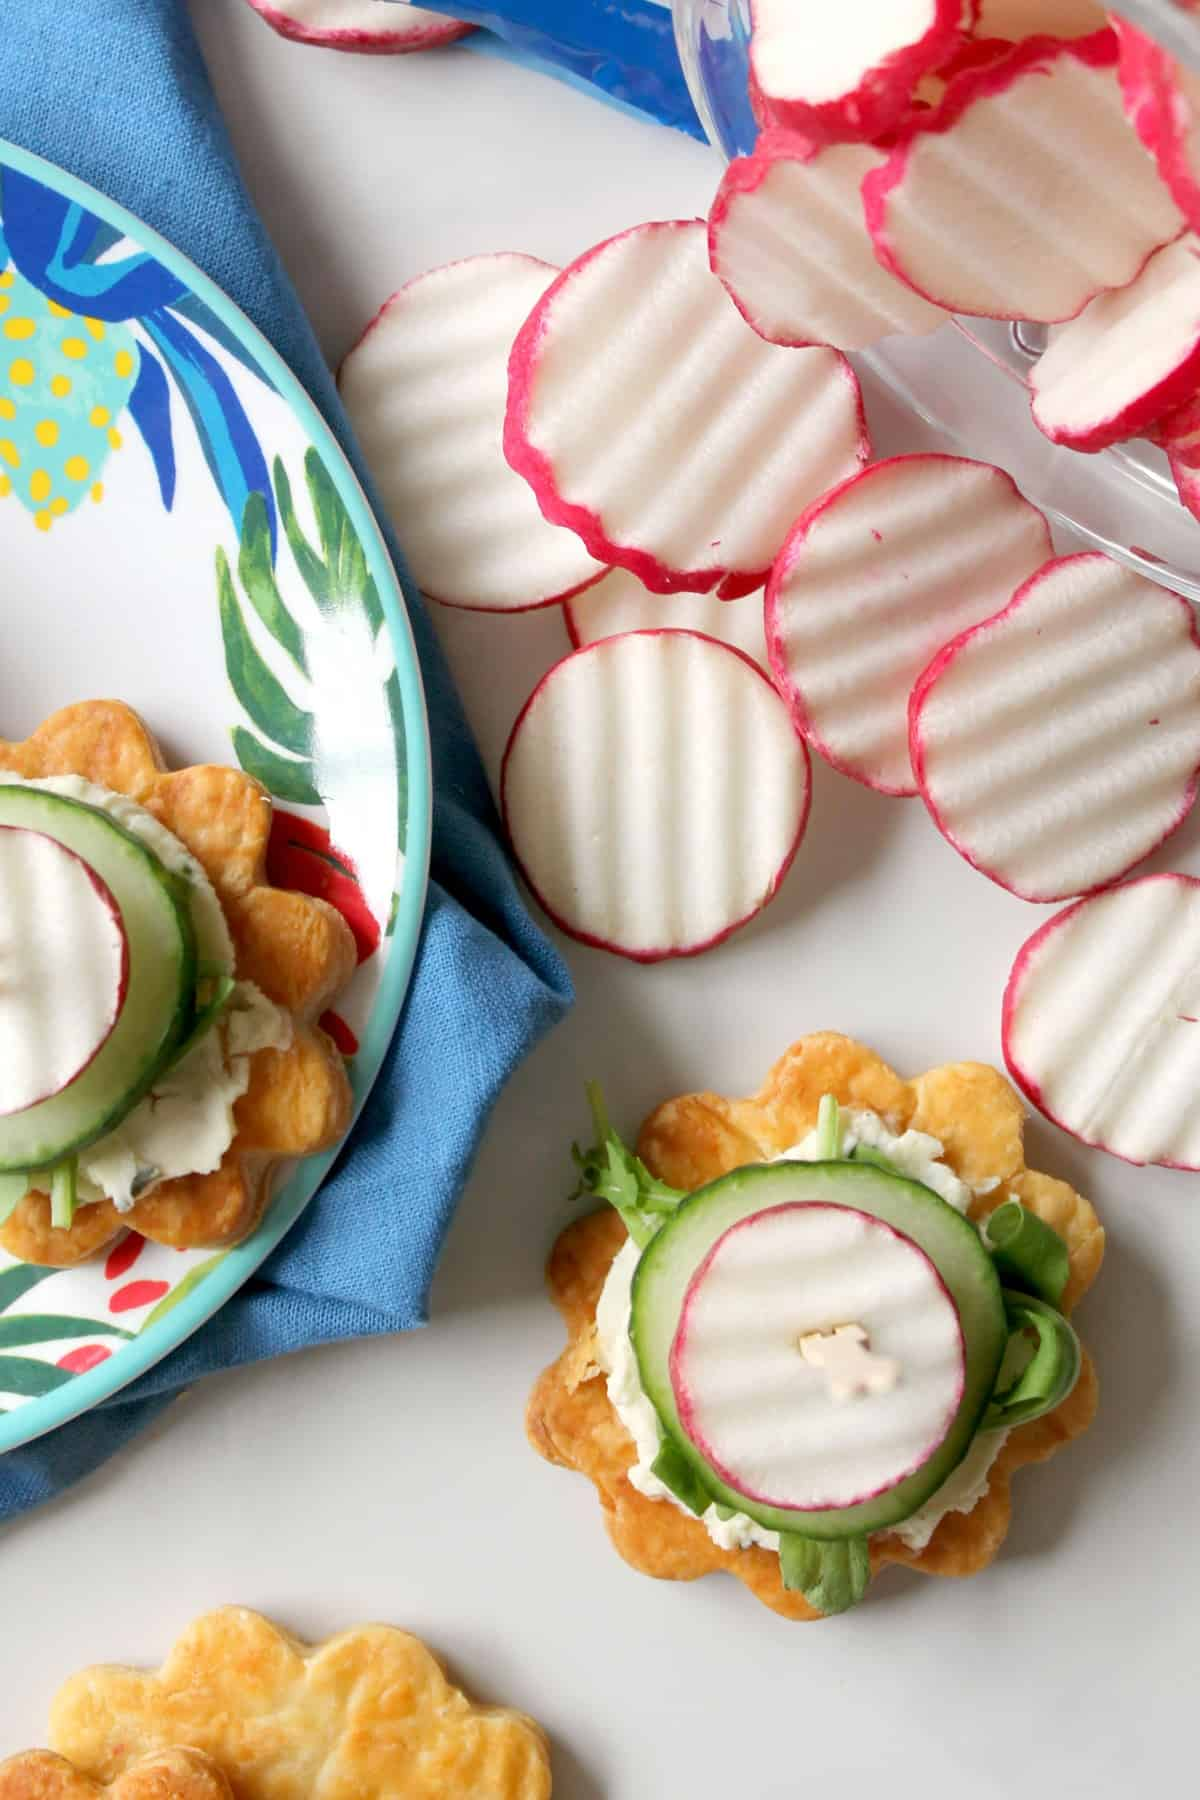 Radish & Cucumber Puff Pastry Bites come together so quickly they'll become your favorite party appetizer! A great addition to spring parties and brunches.